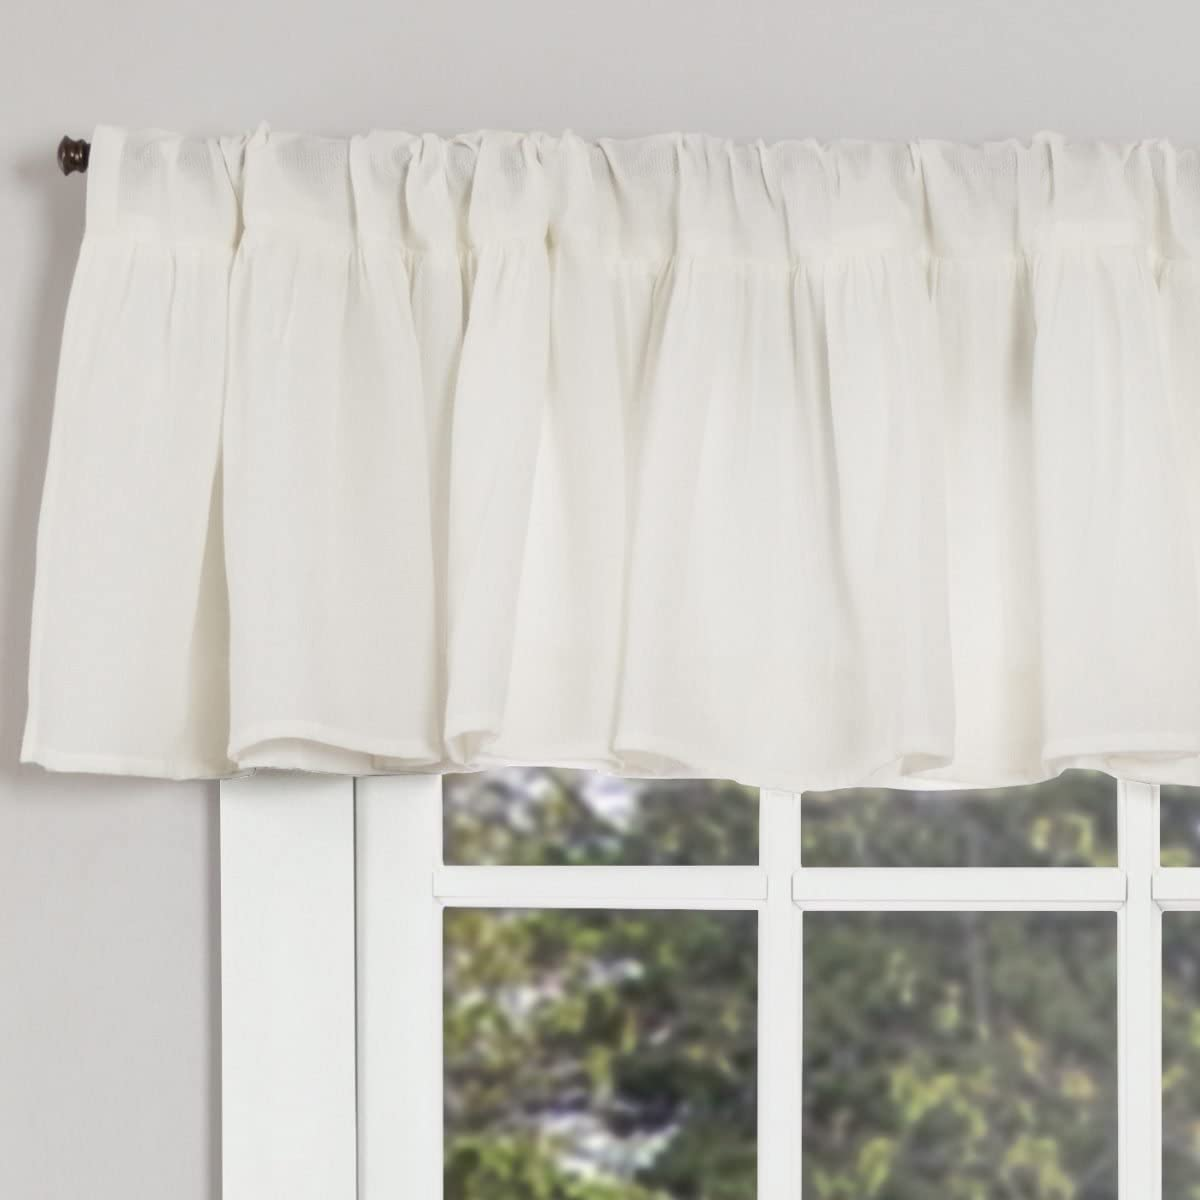 Piper Classics Annabelle Ruffled Valance Curtain, 72 x 16 , Antique Soft White, Semi-Sheer, Vintage Farmhouse Chic Style Curtain